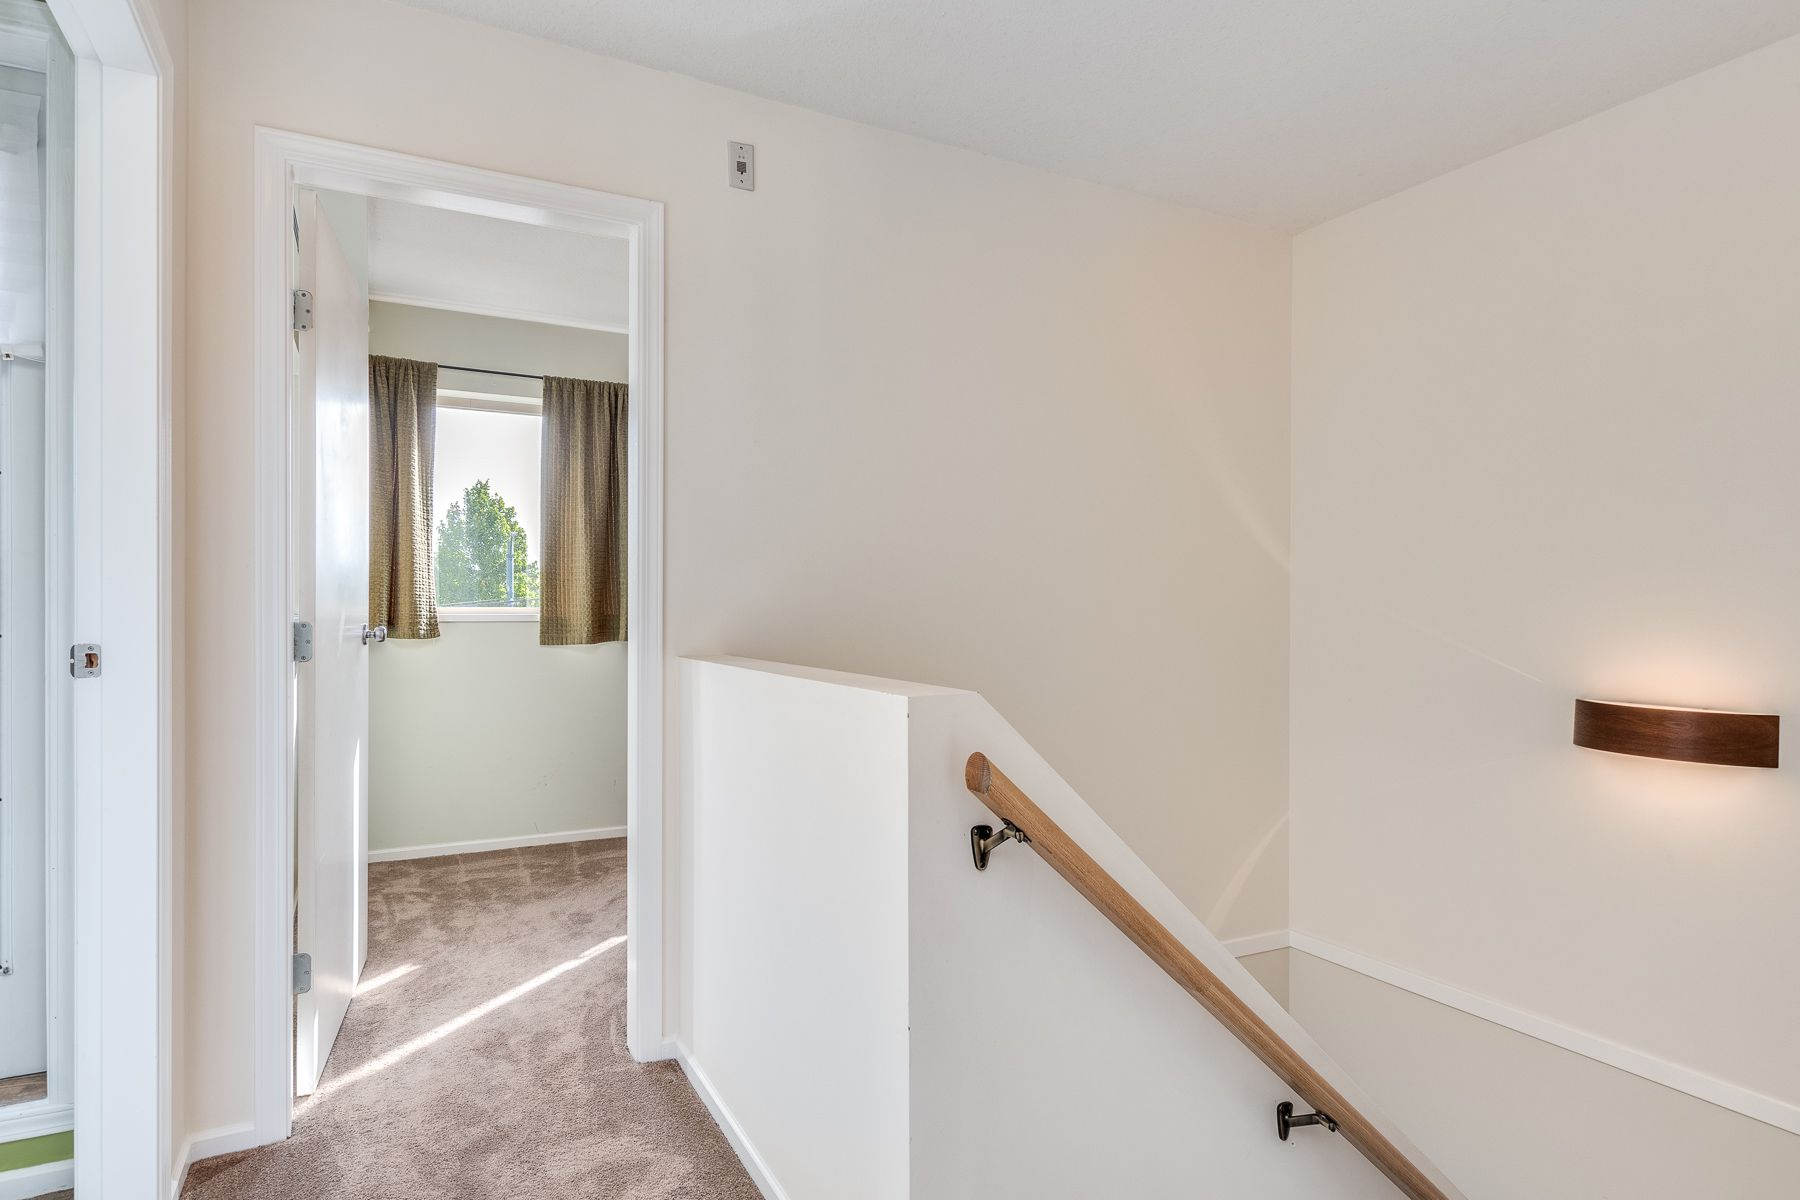 Photo 20: Photos: 7-2389 Charles St in Vancouver: Grandview Woodland Townhouse for sale (Vancouver East)